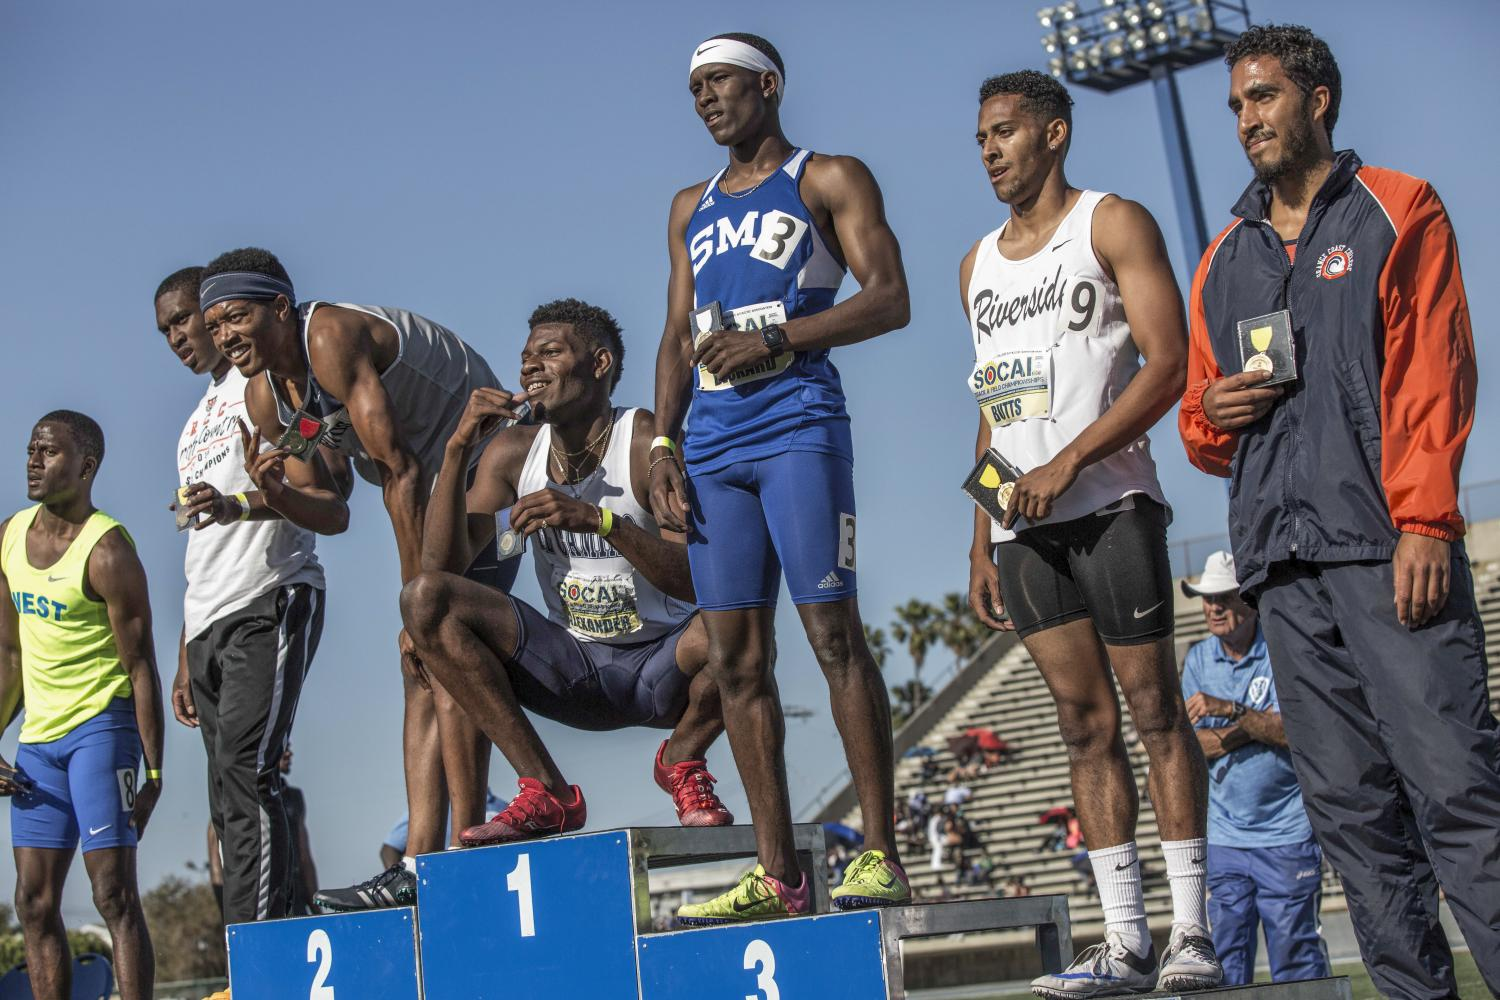 California pose for the cameras while showing off the medals they received in the Men's 400m Hurdle during the So Cal track and field finals in the Cerritos College field in Norwalk, Calif., on Saturday, May 13, 2017. Our Santa Monica College Corsair sophomore athlete Devyn Deckard (#3, Blue) receives his 3rd place medal for the Men's 400m Hurdle during the So Cal track and field championships. (Matthew Martin)